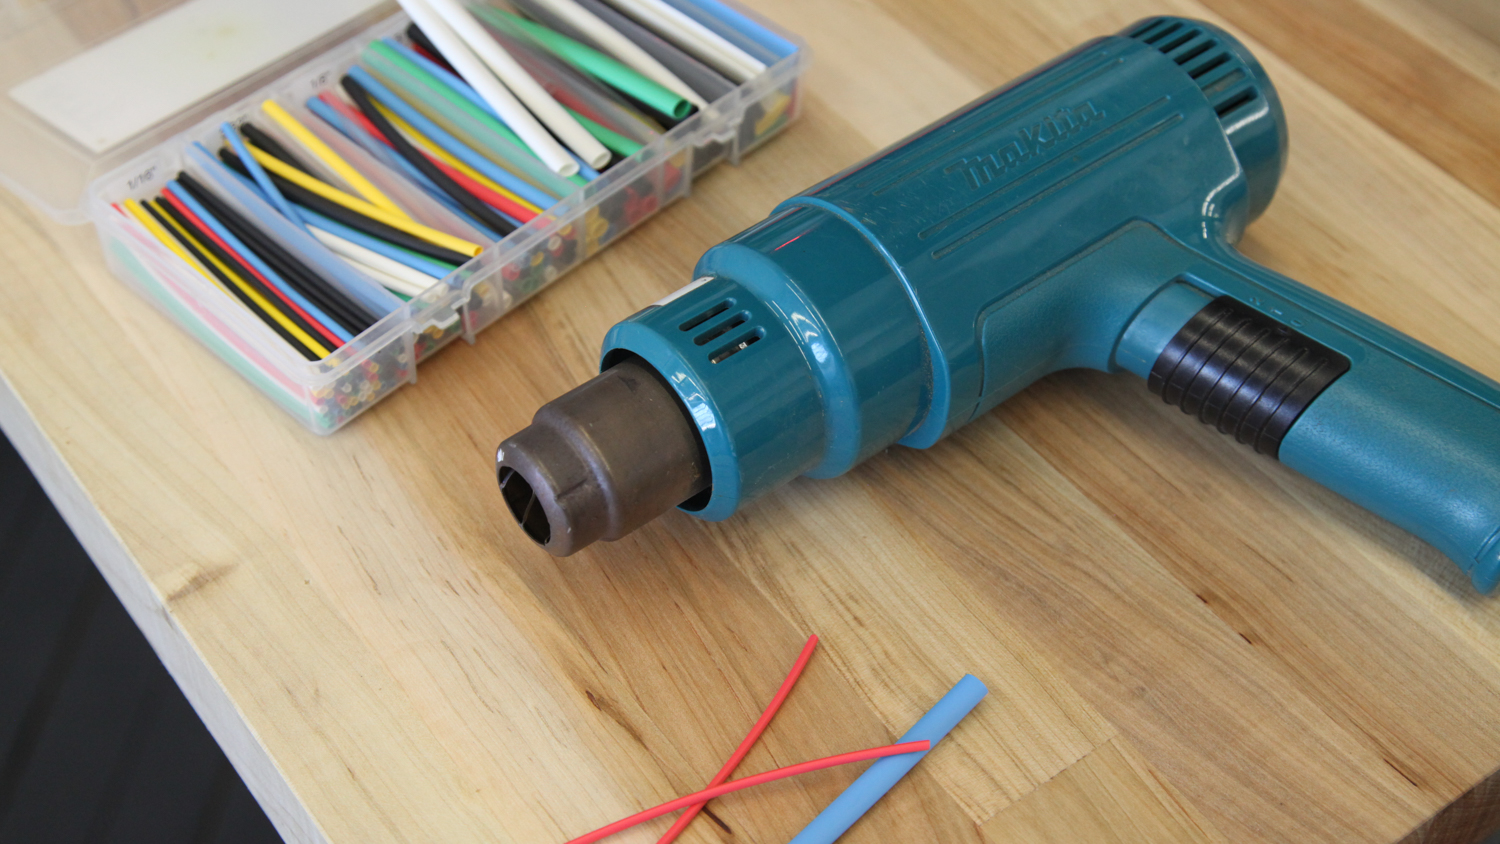 Makita heat gun - Never try to use shrink wrap with a lighter again.